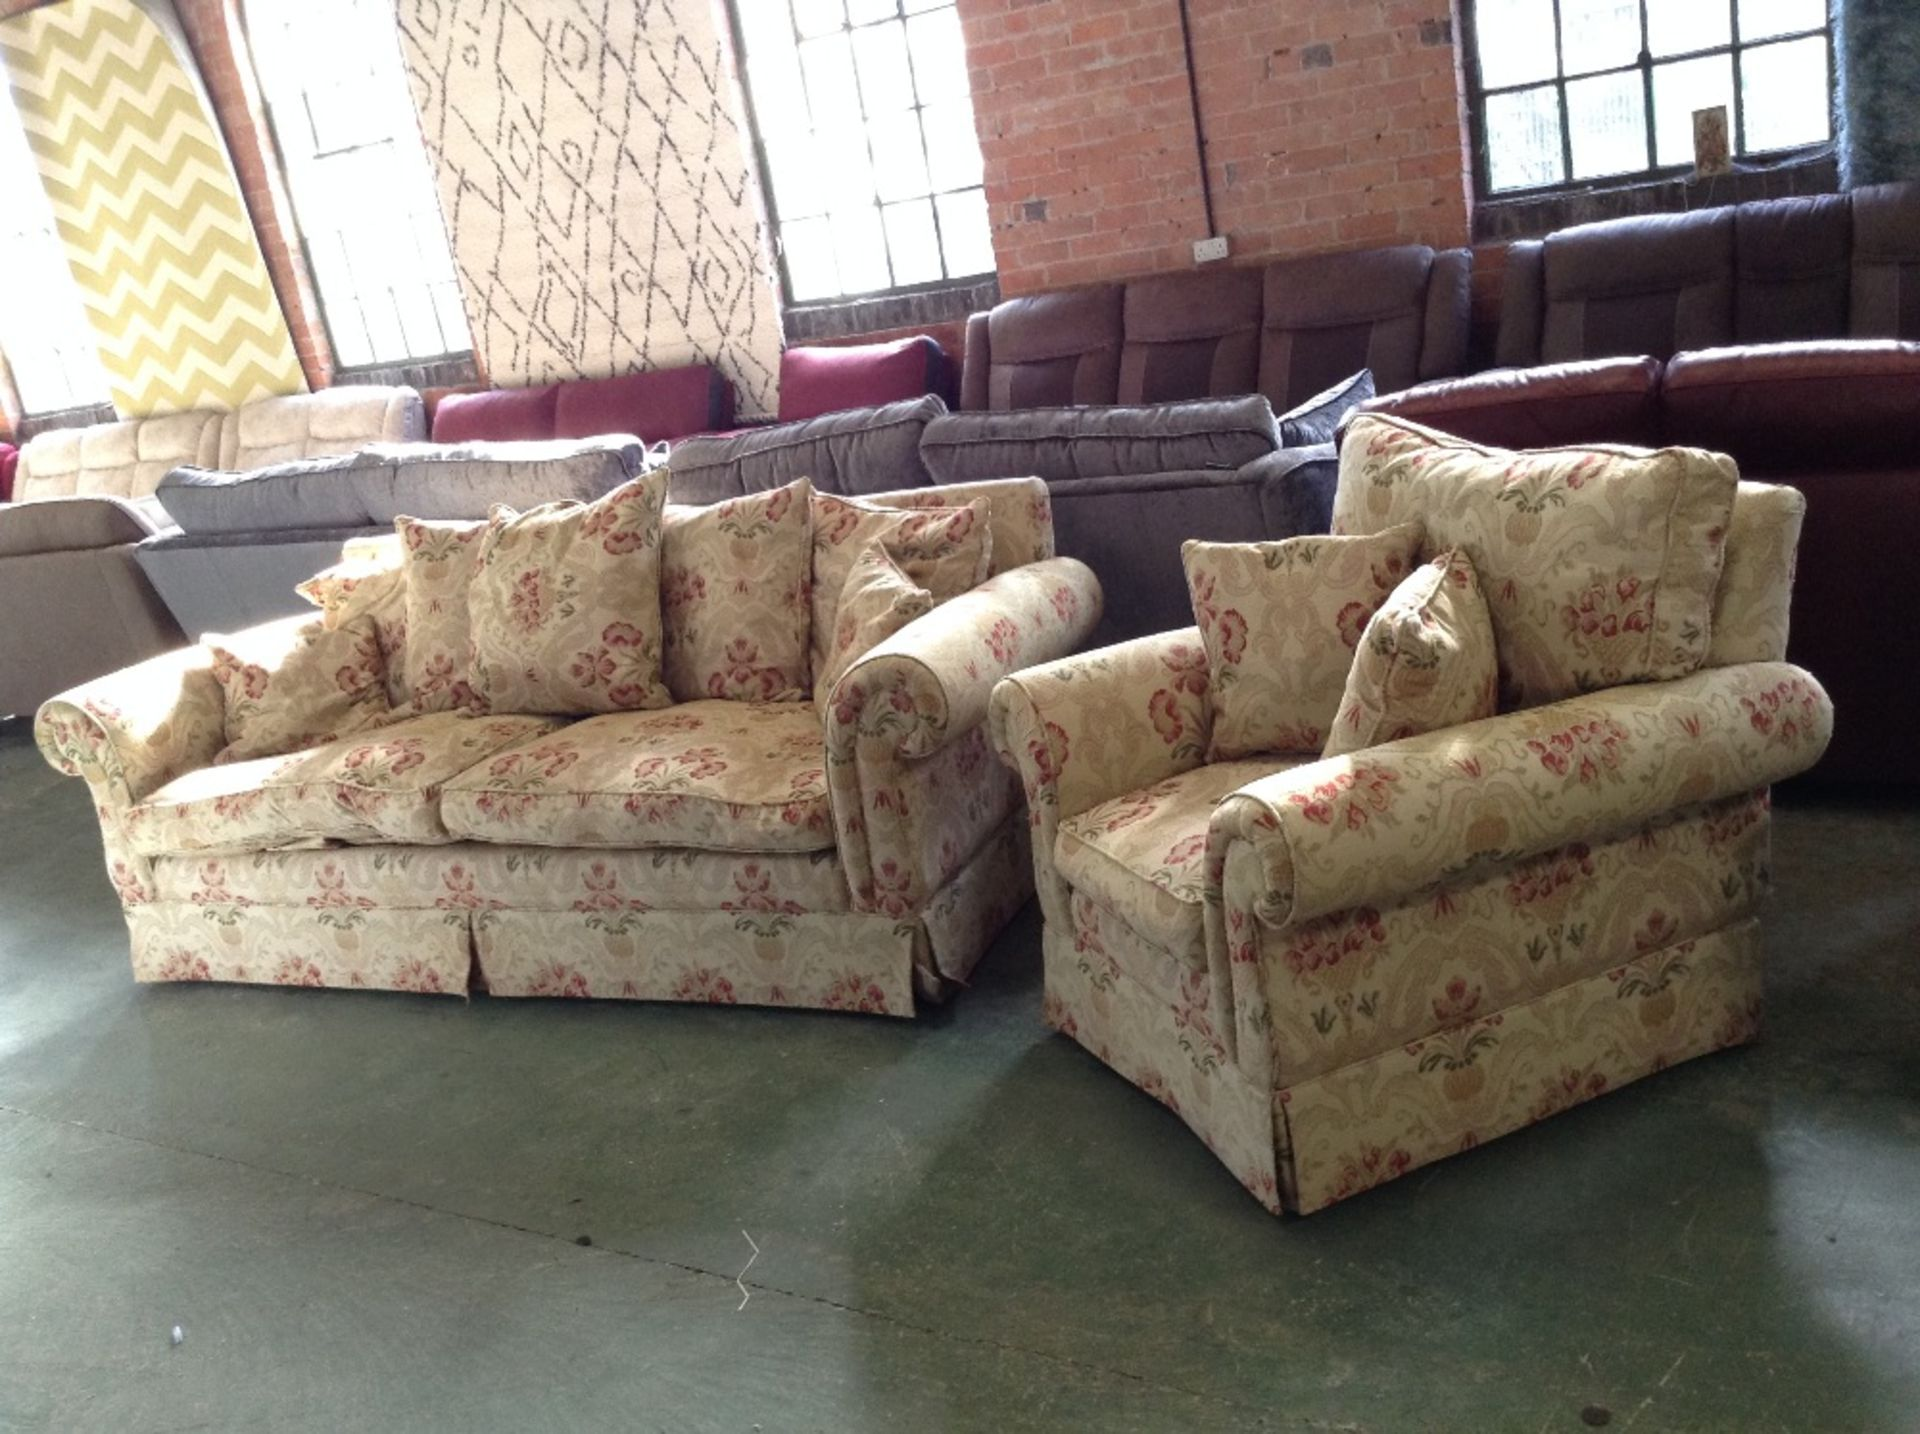 Lotto 31 - GOLDEN PATTERNED FLORAL PATTERNED LARGE 3 SEATER S